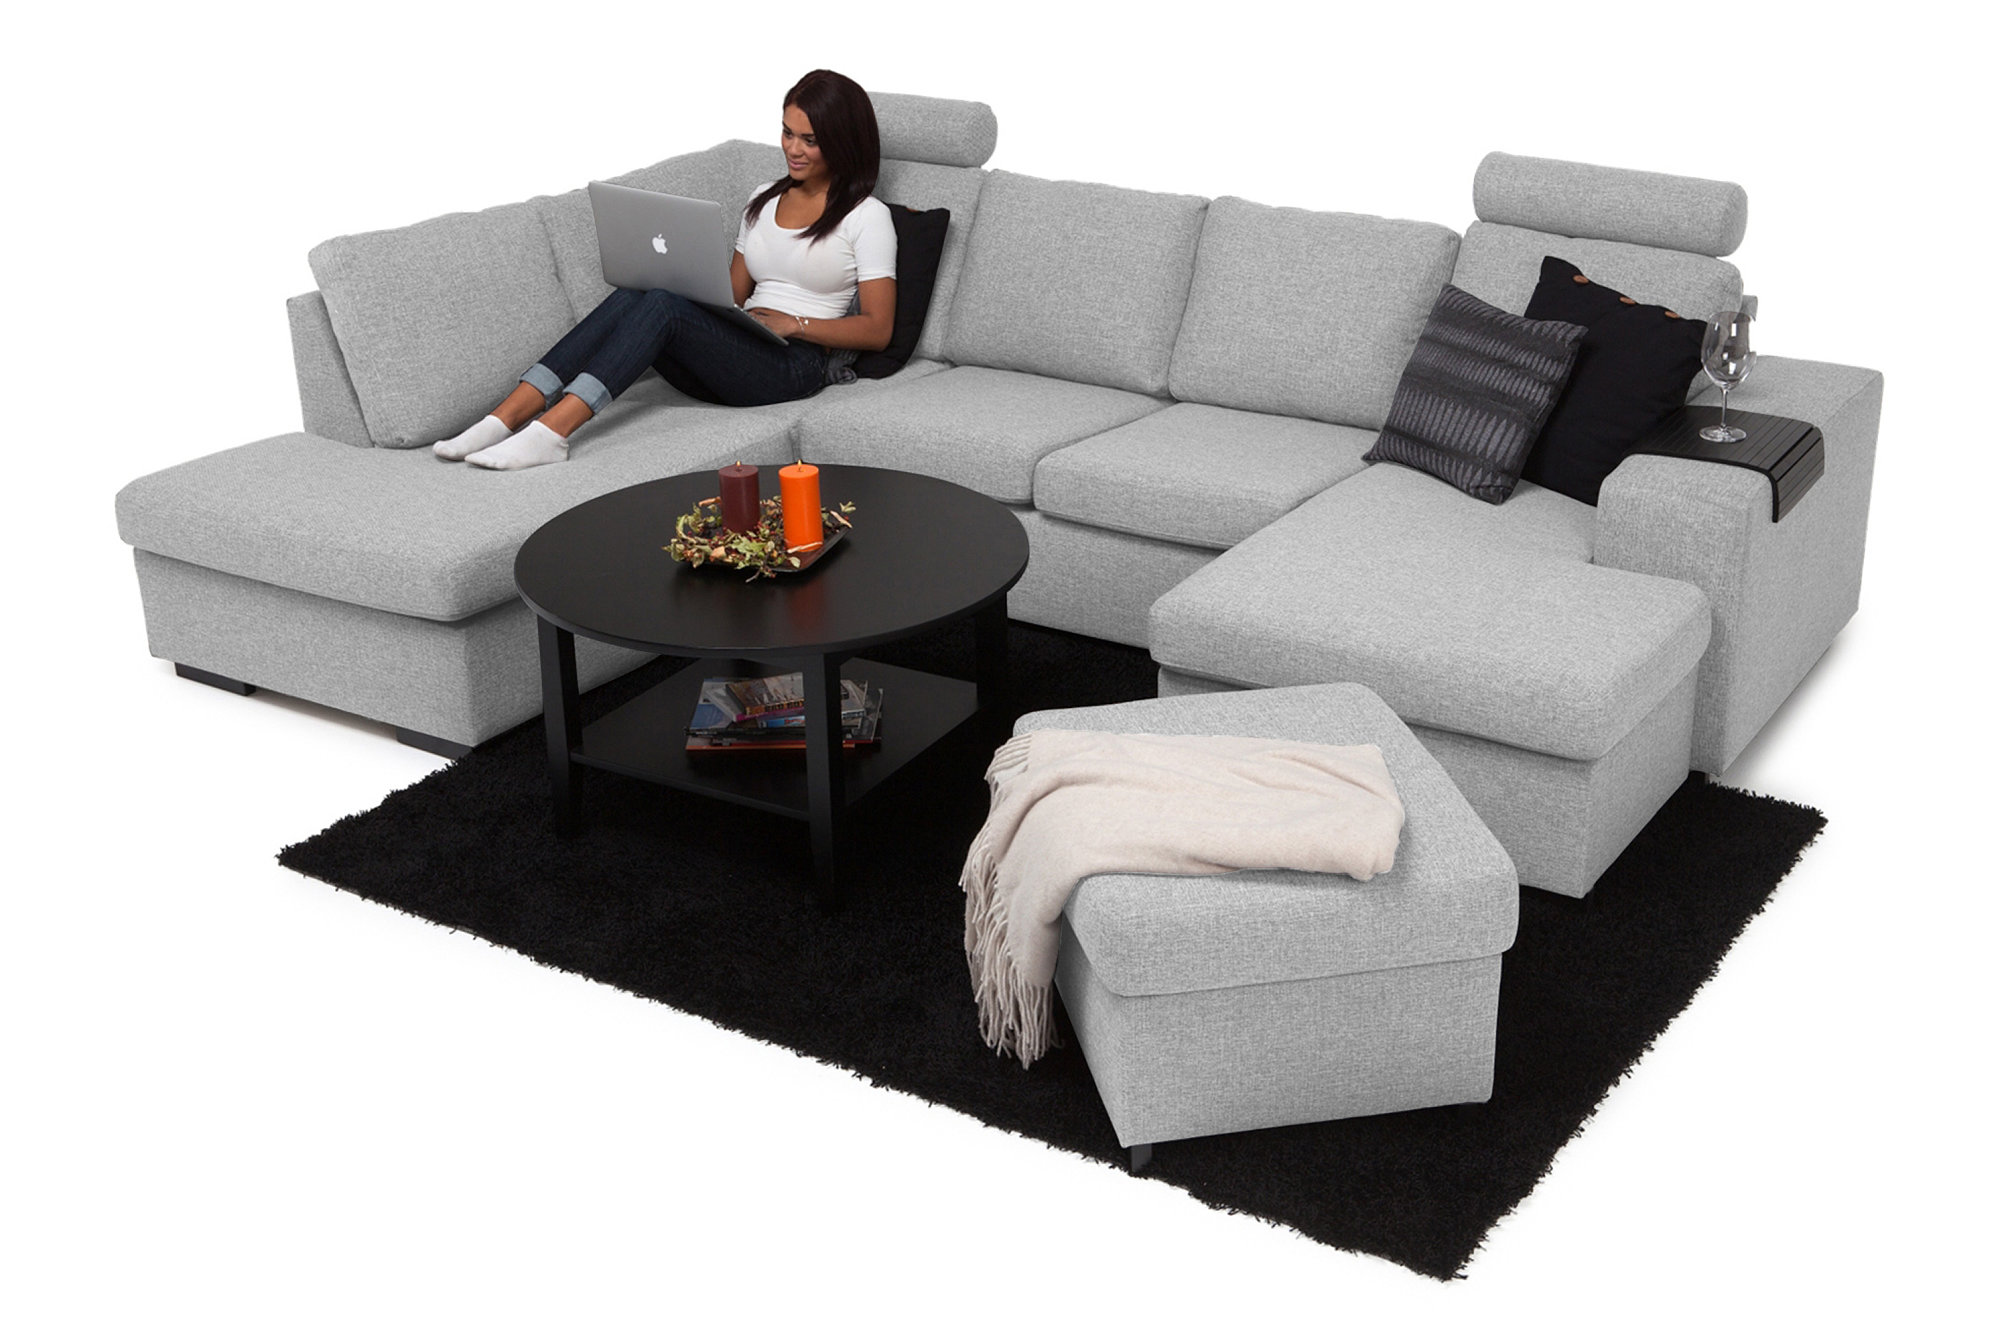 If you're looking for a stylish u shaped sectional couch, this is one such place where you can find it. See how good this u couch is.